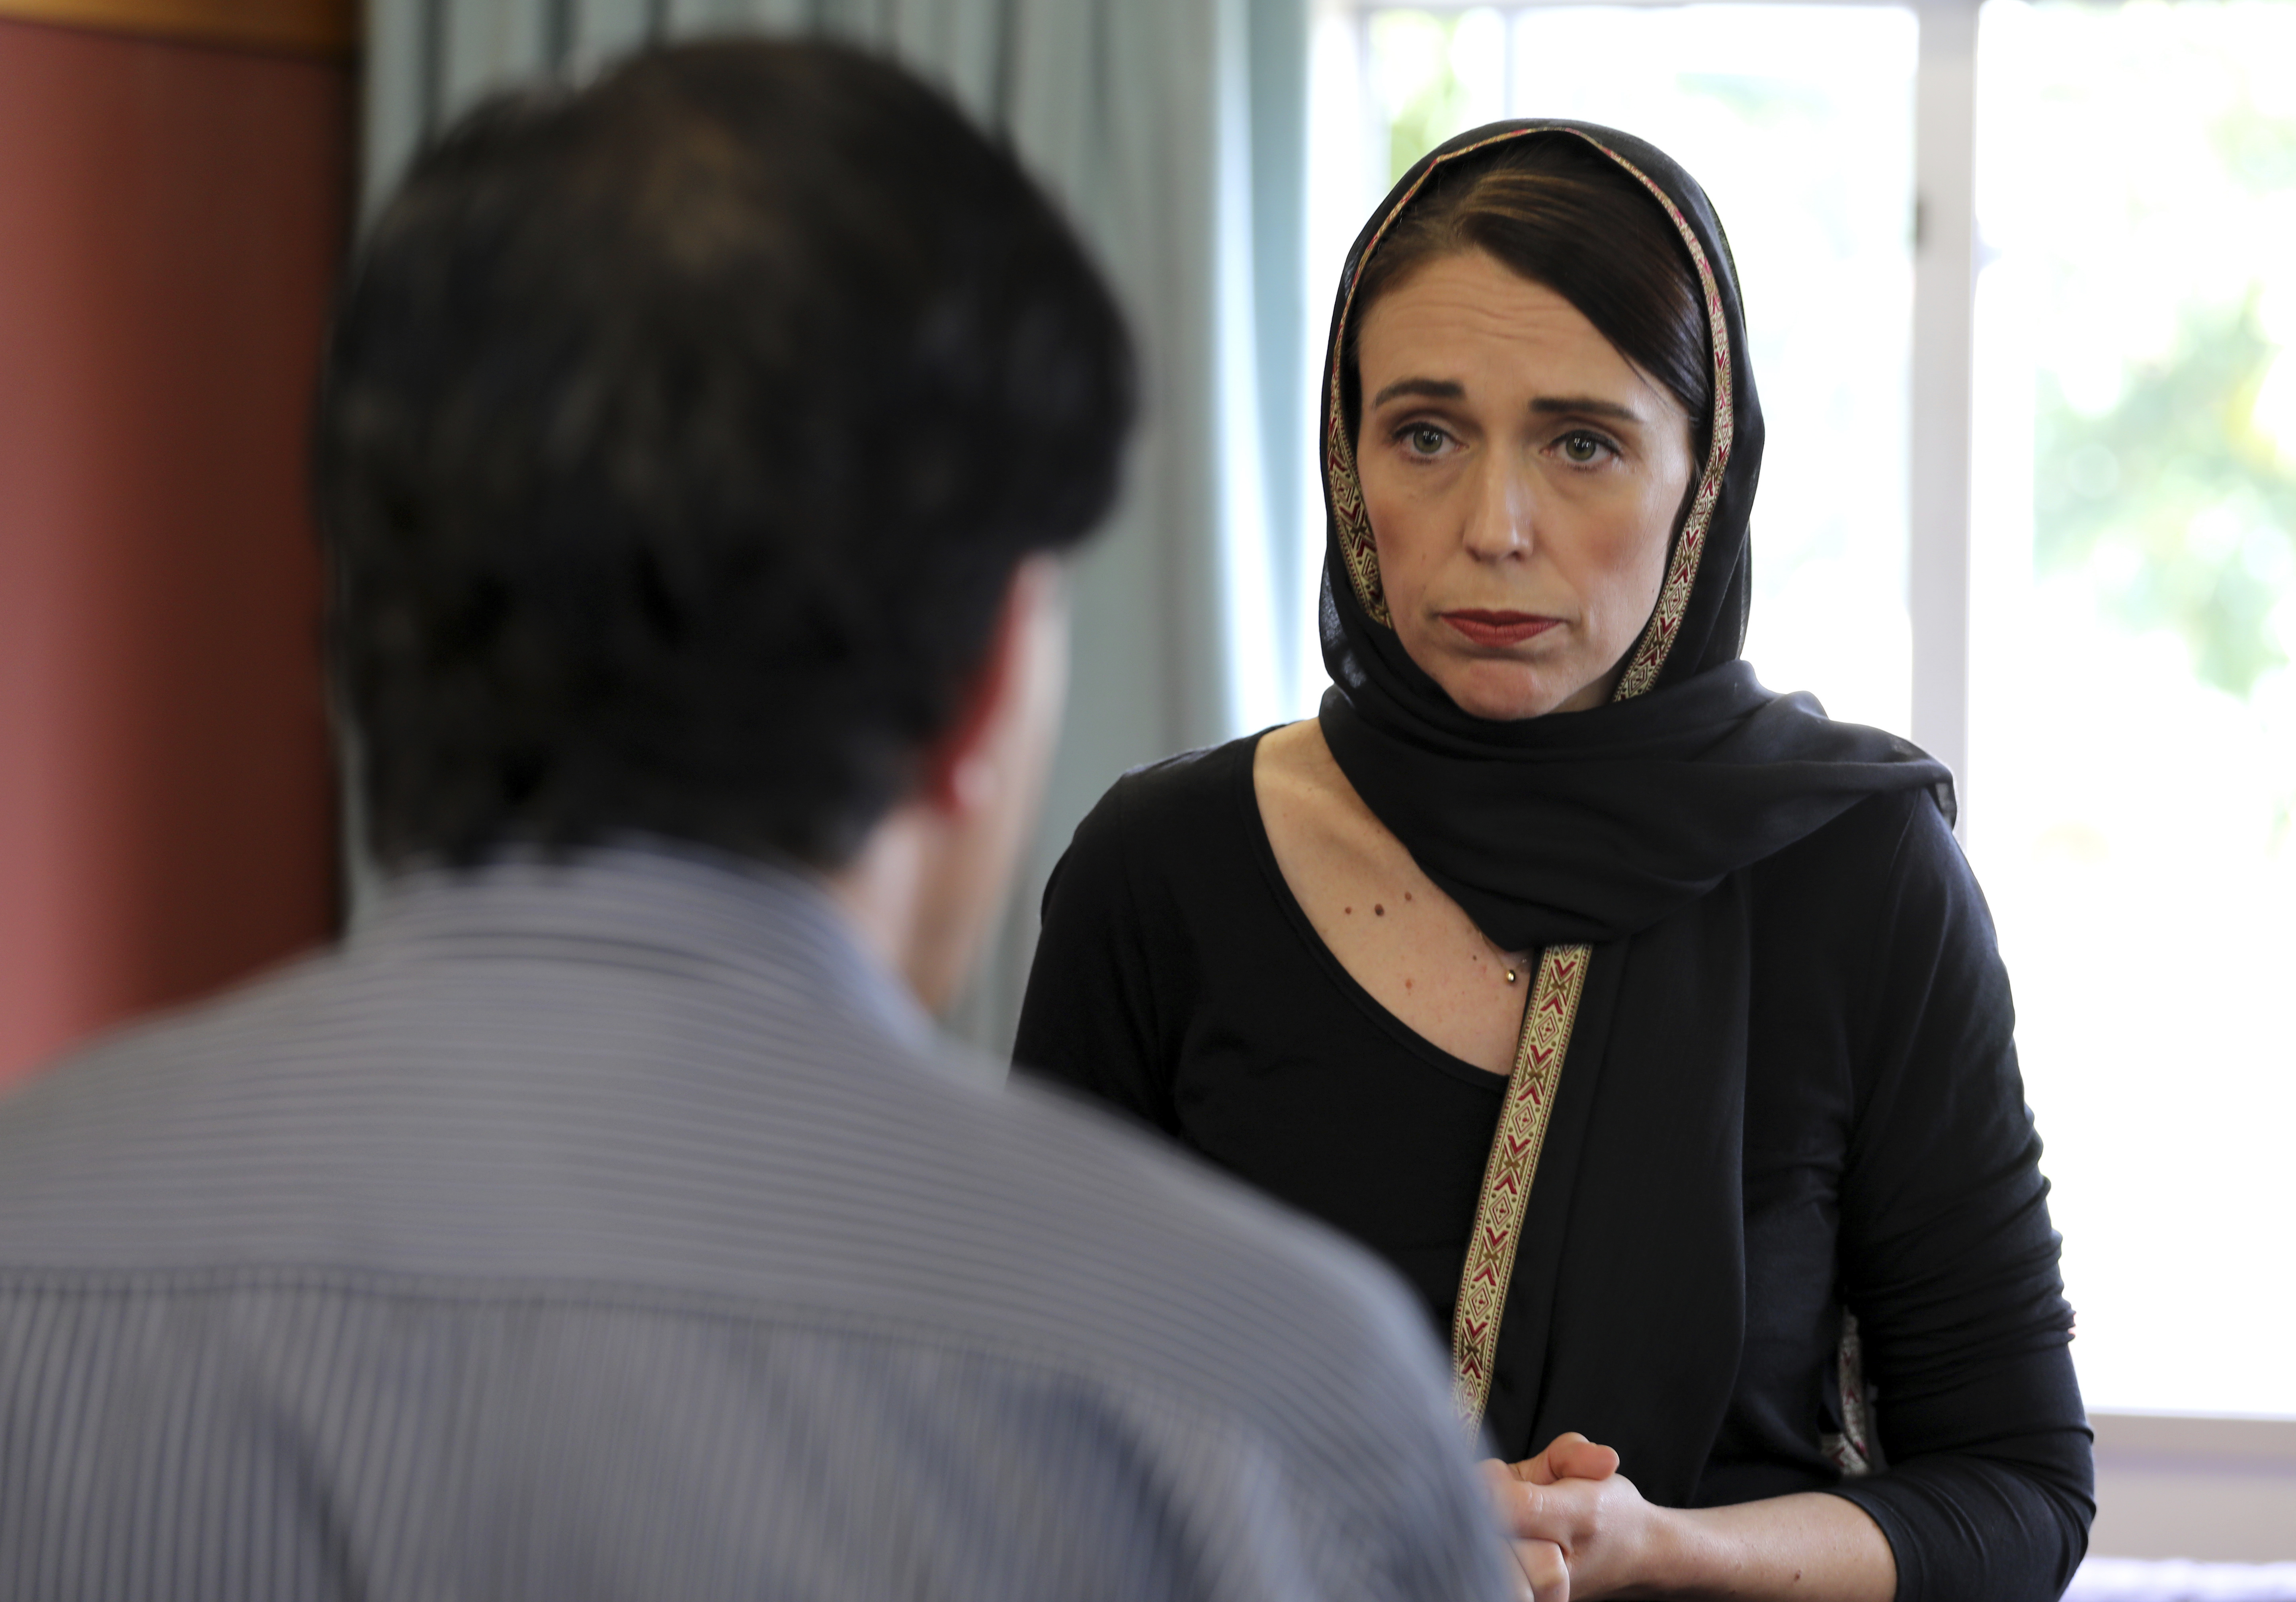 Ms Ardern spoke with victims of the sickening terror attack. Credit: PA